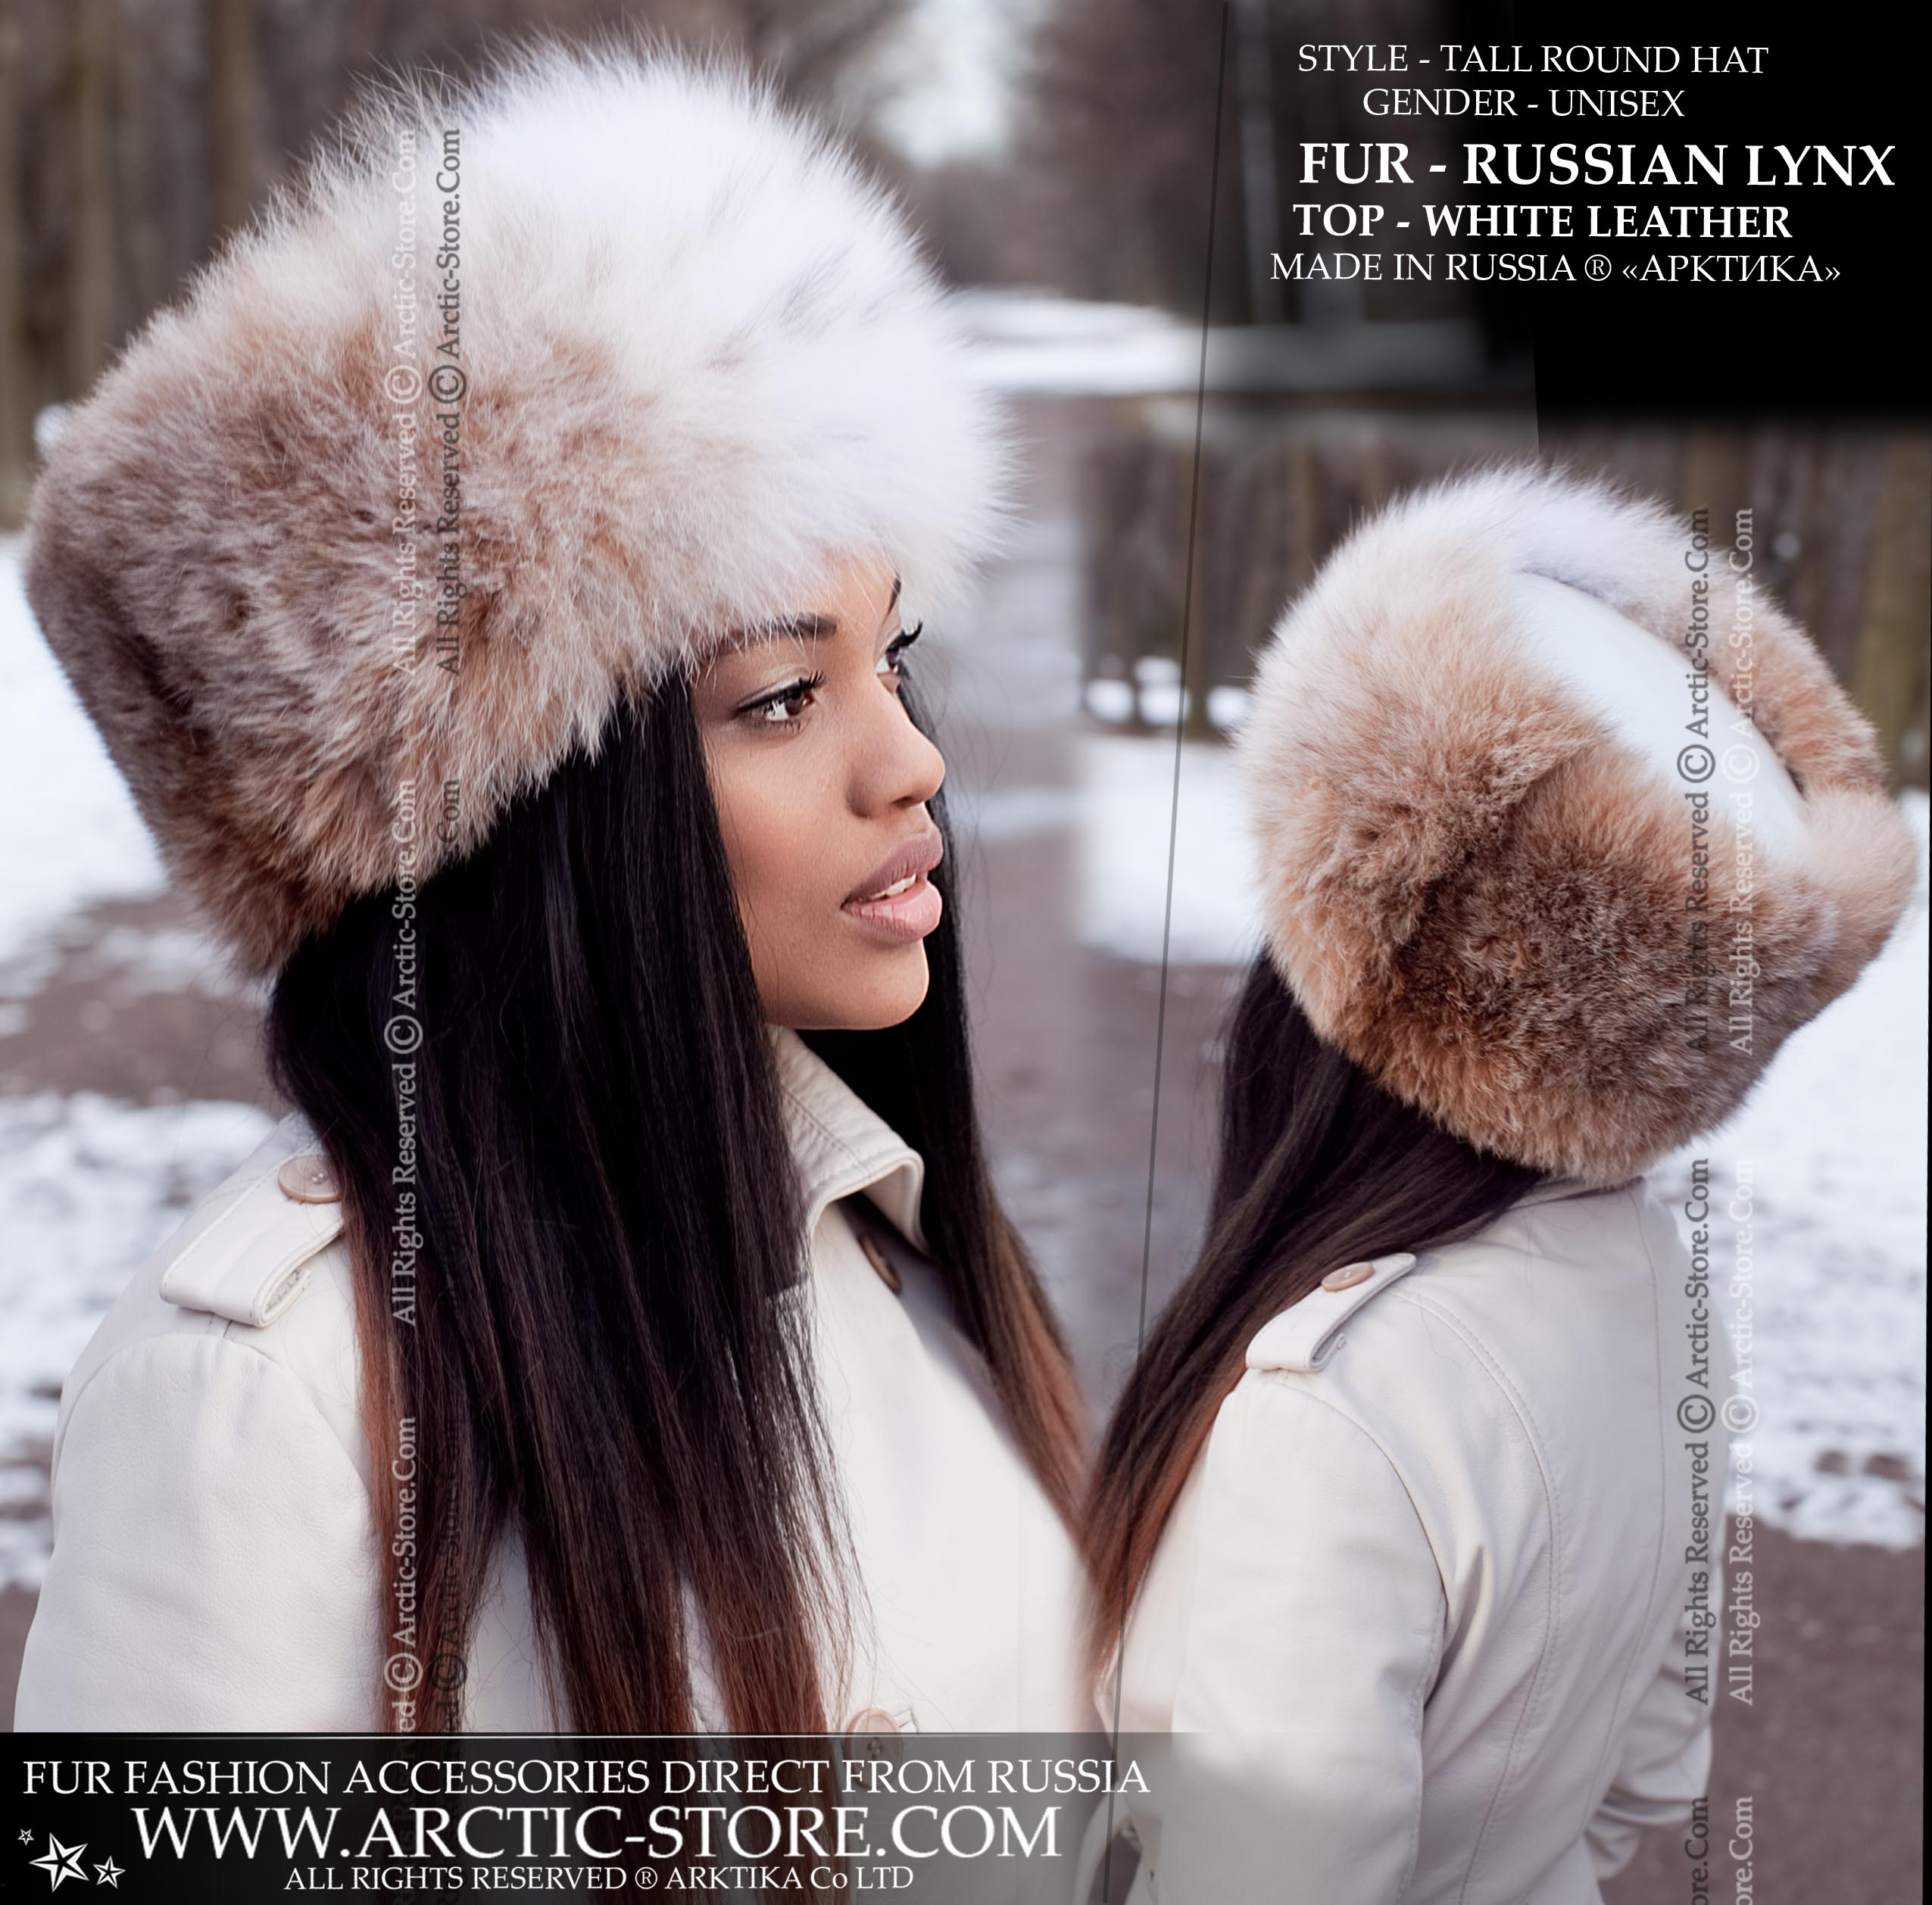 e31ca69dc0494 Real Fur Hats and Caps on Sale in Arctic-Store